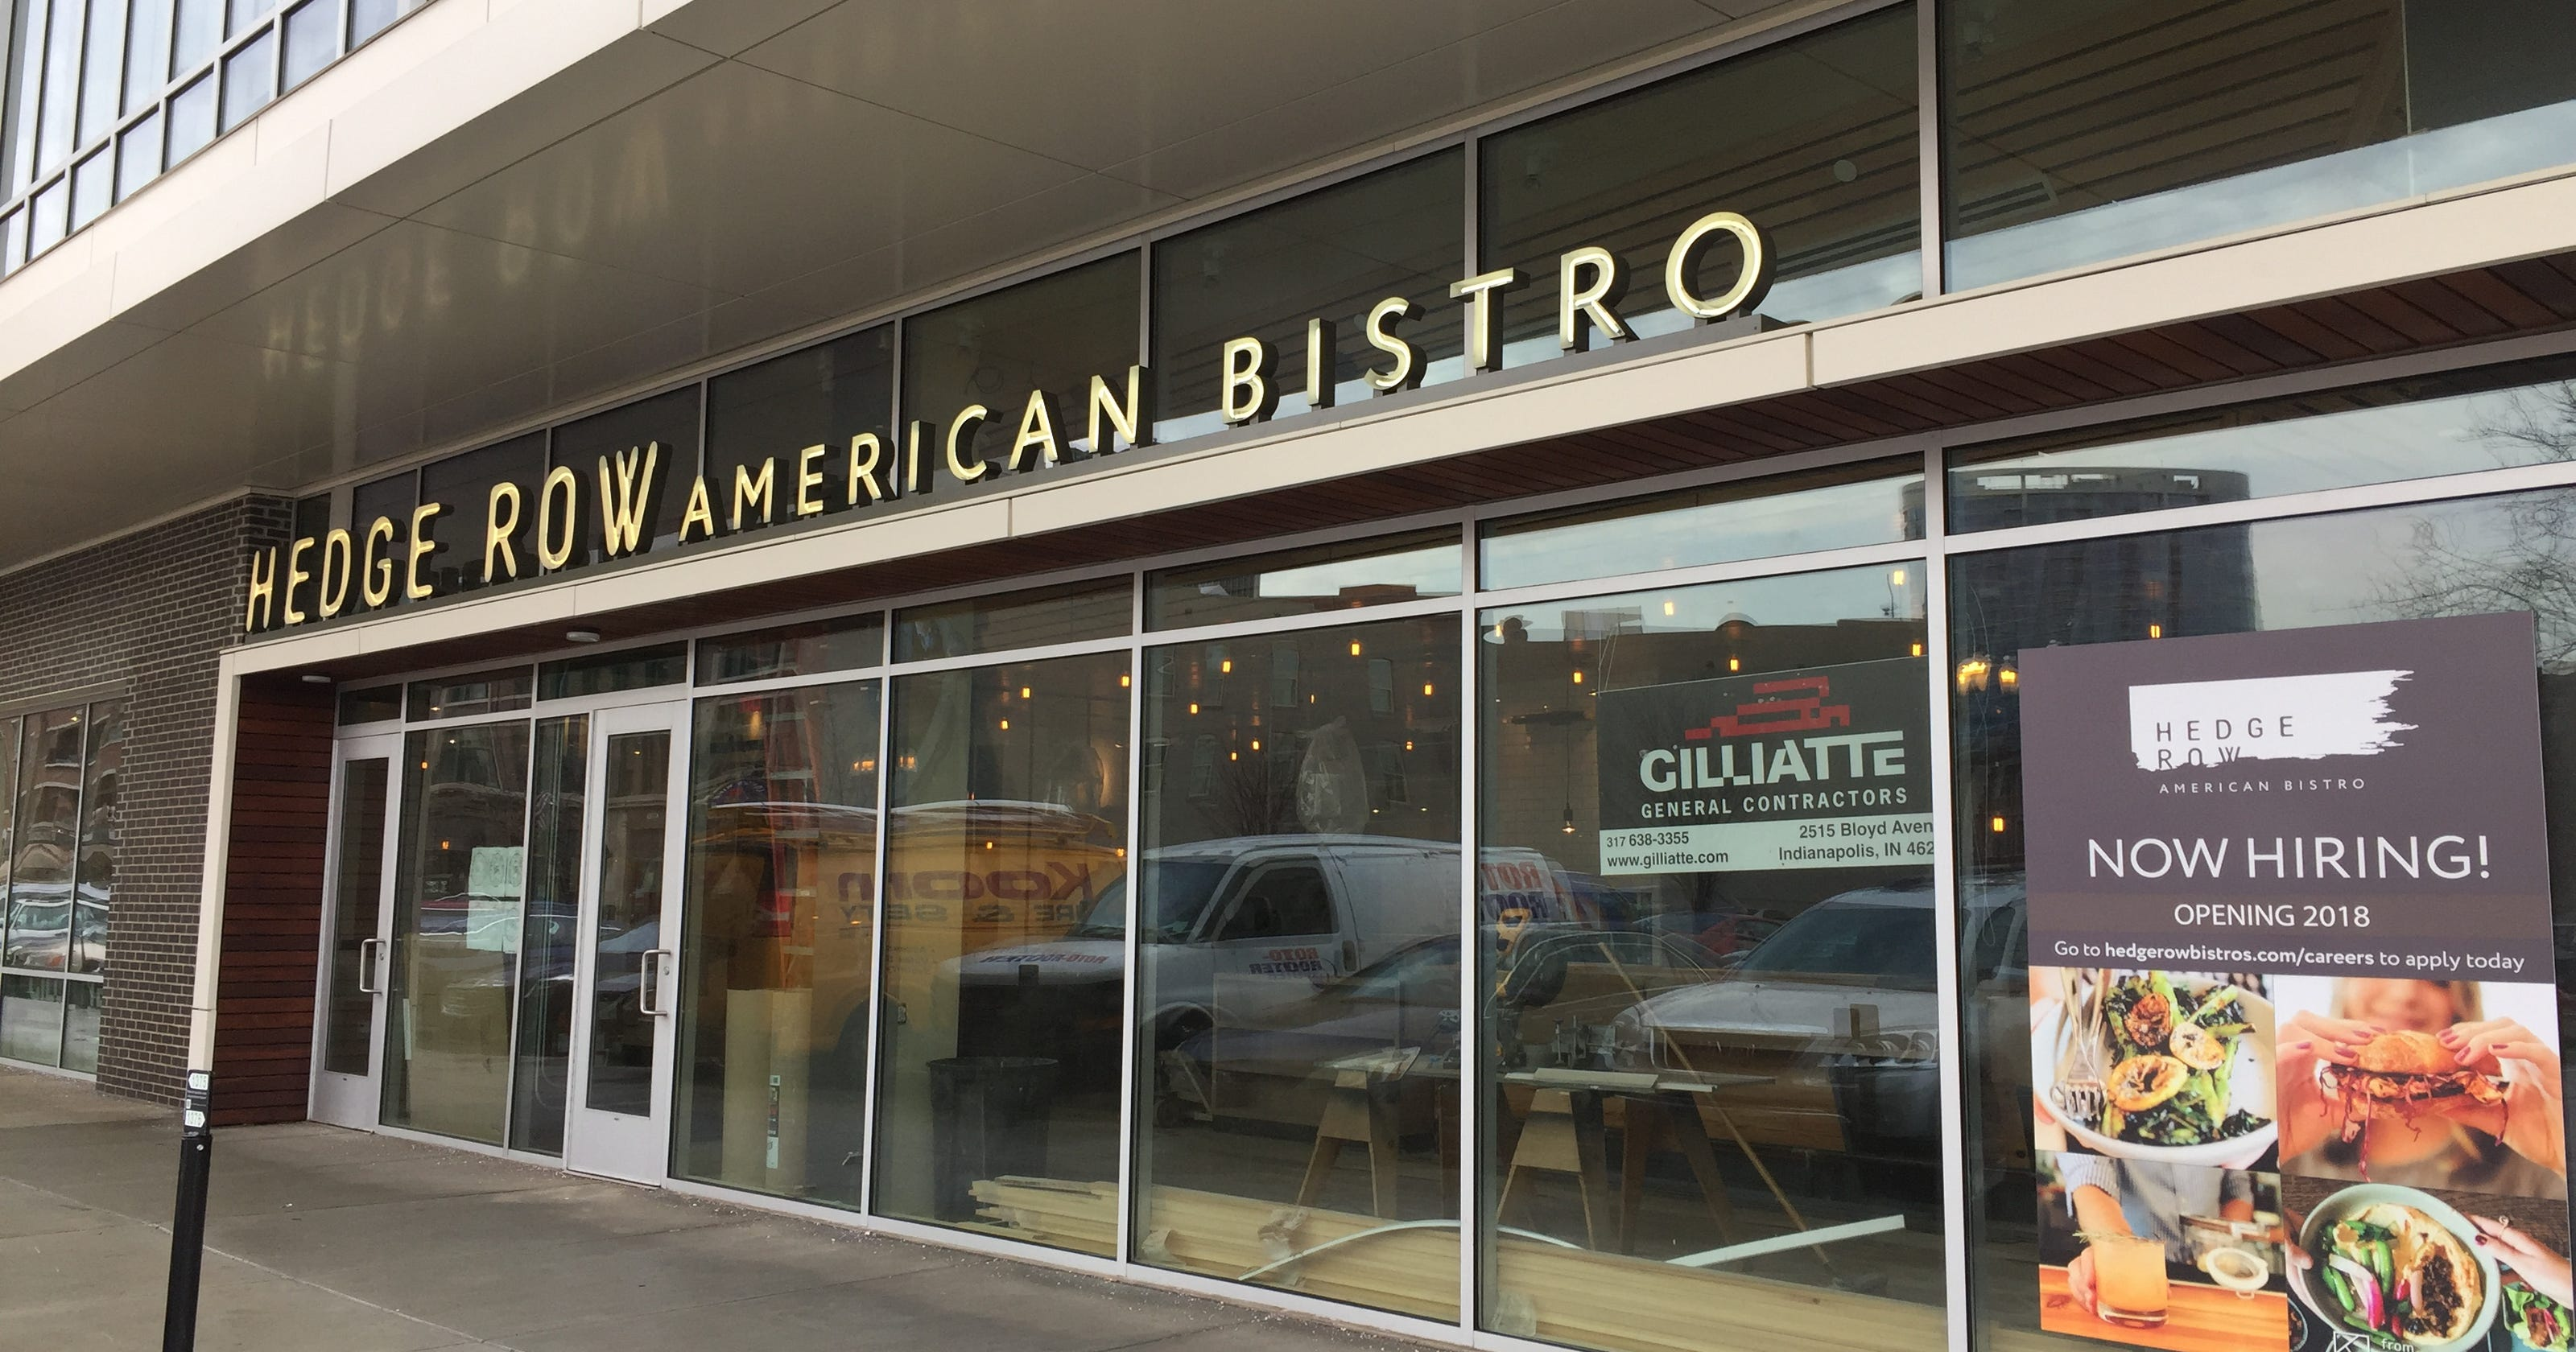 This is when Elon Musk's brother opens his Indianapolis restaurants